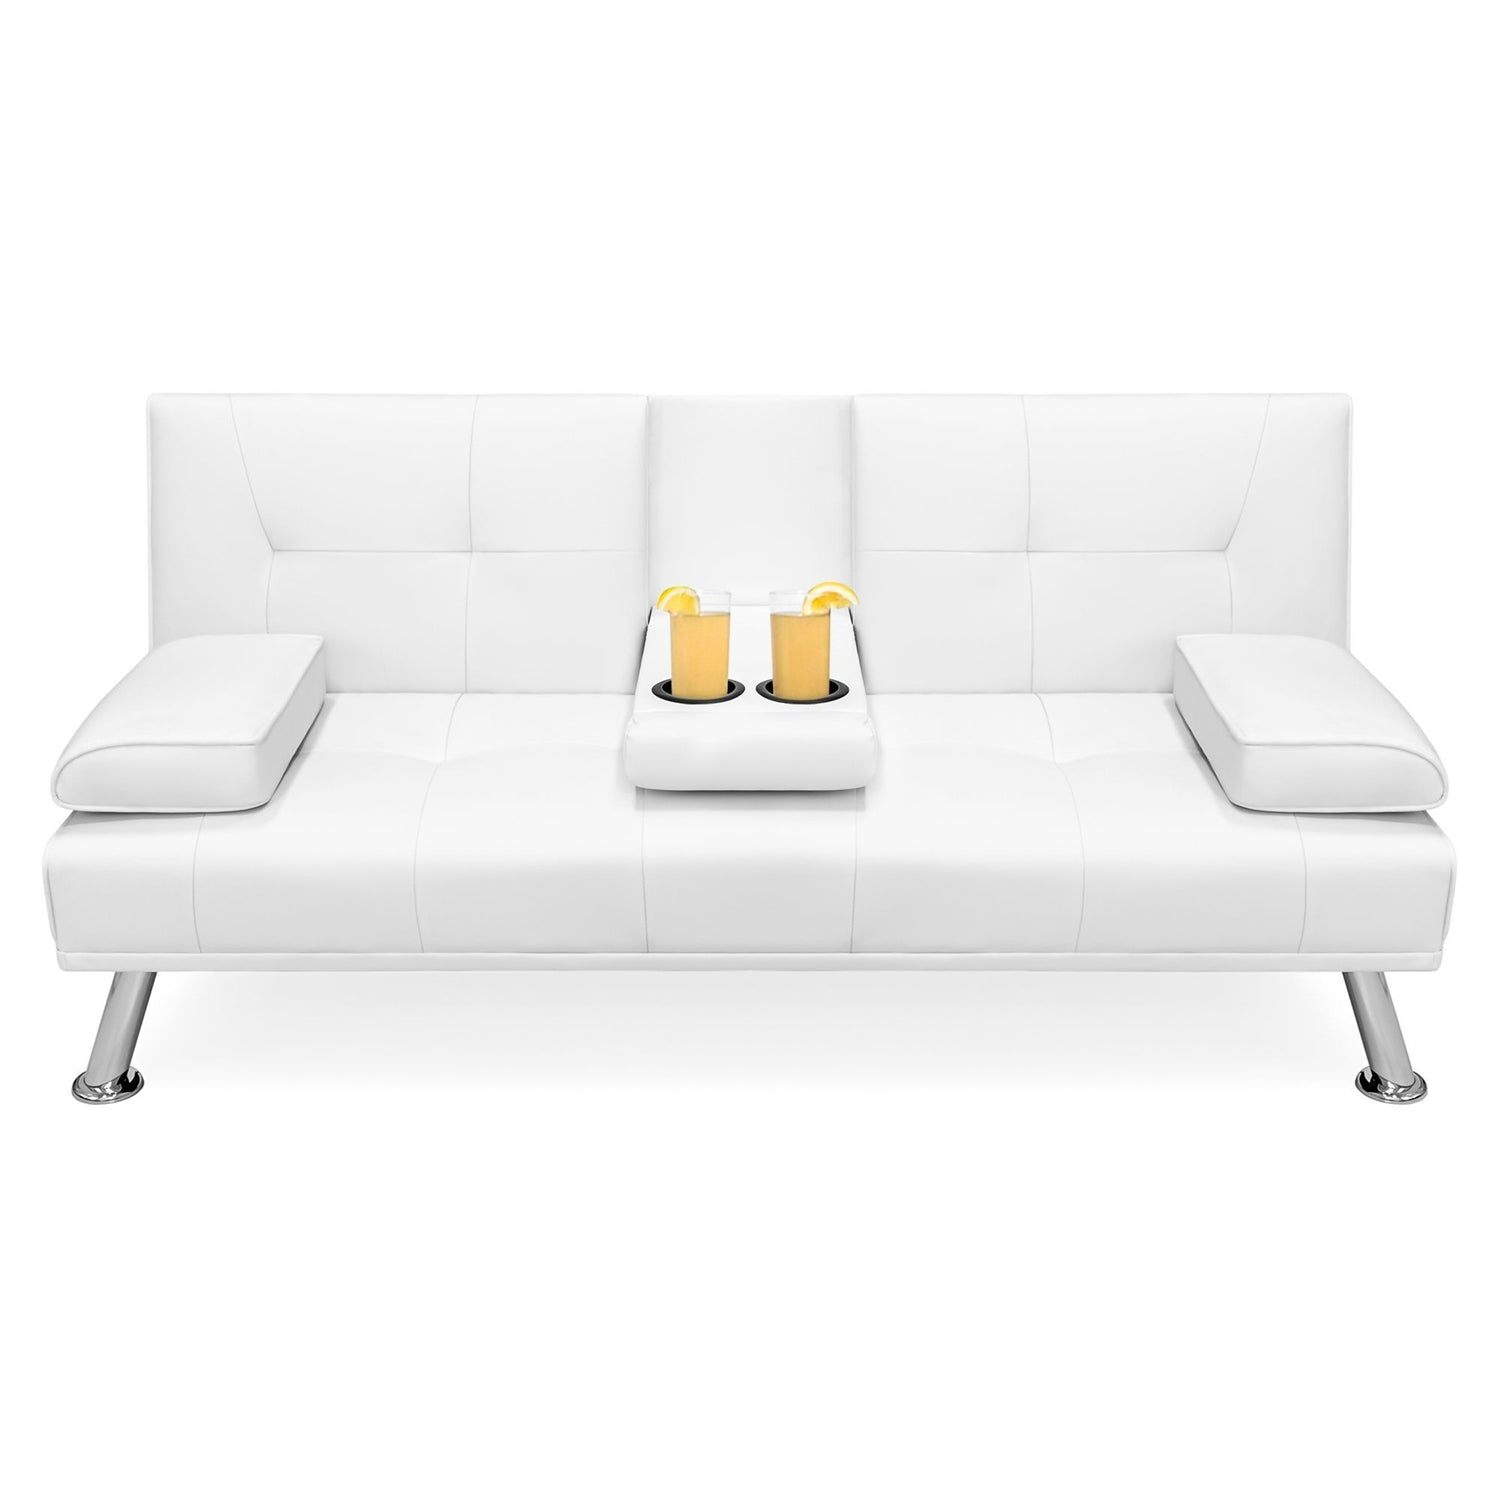 White Faux Leather Convertible Sofa Futon with 2 Cup Holders